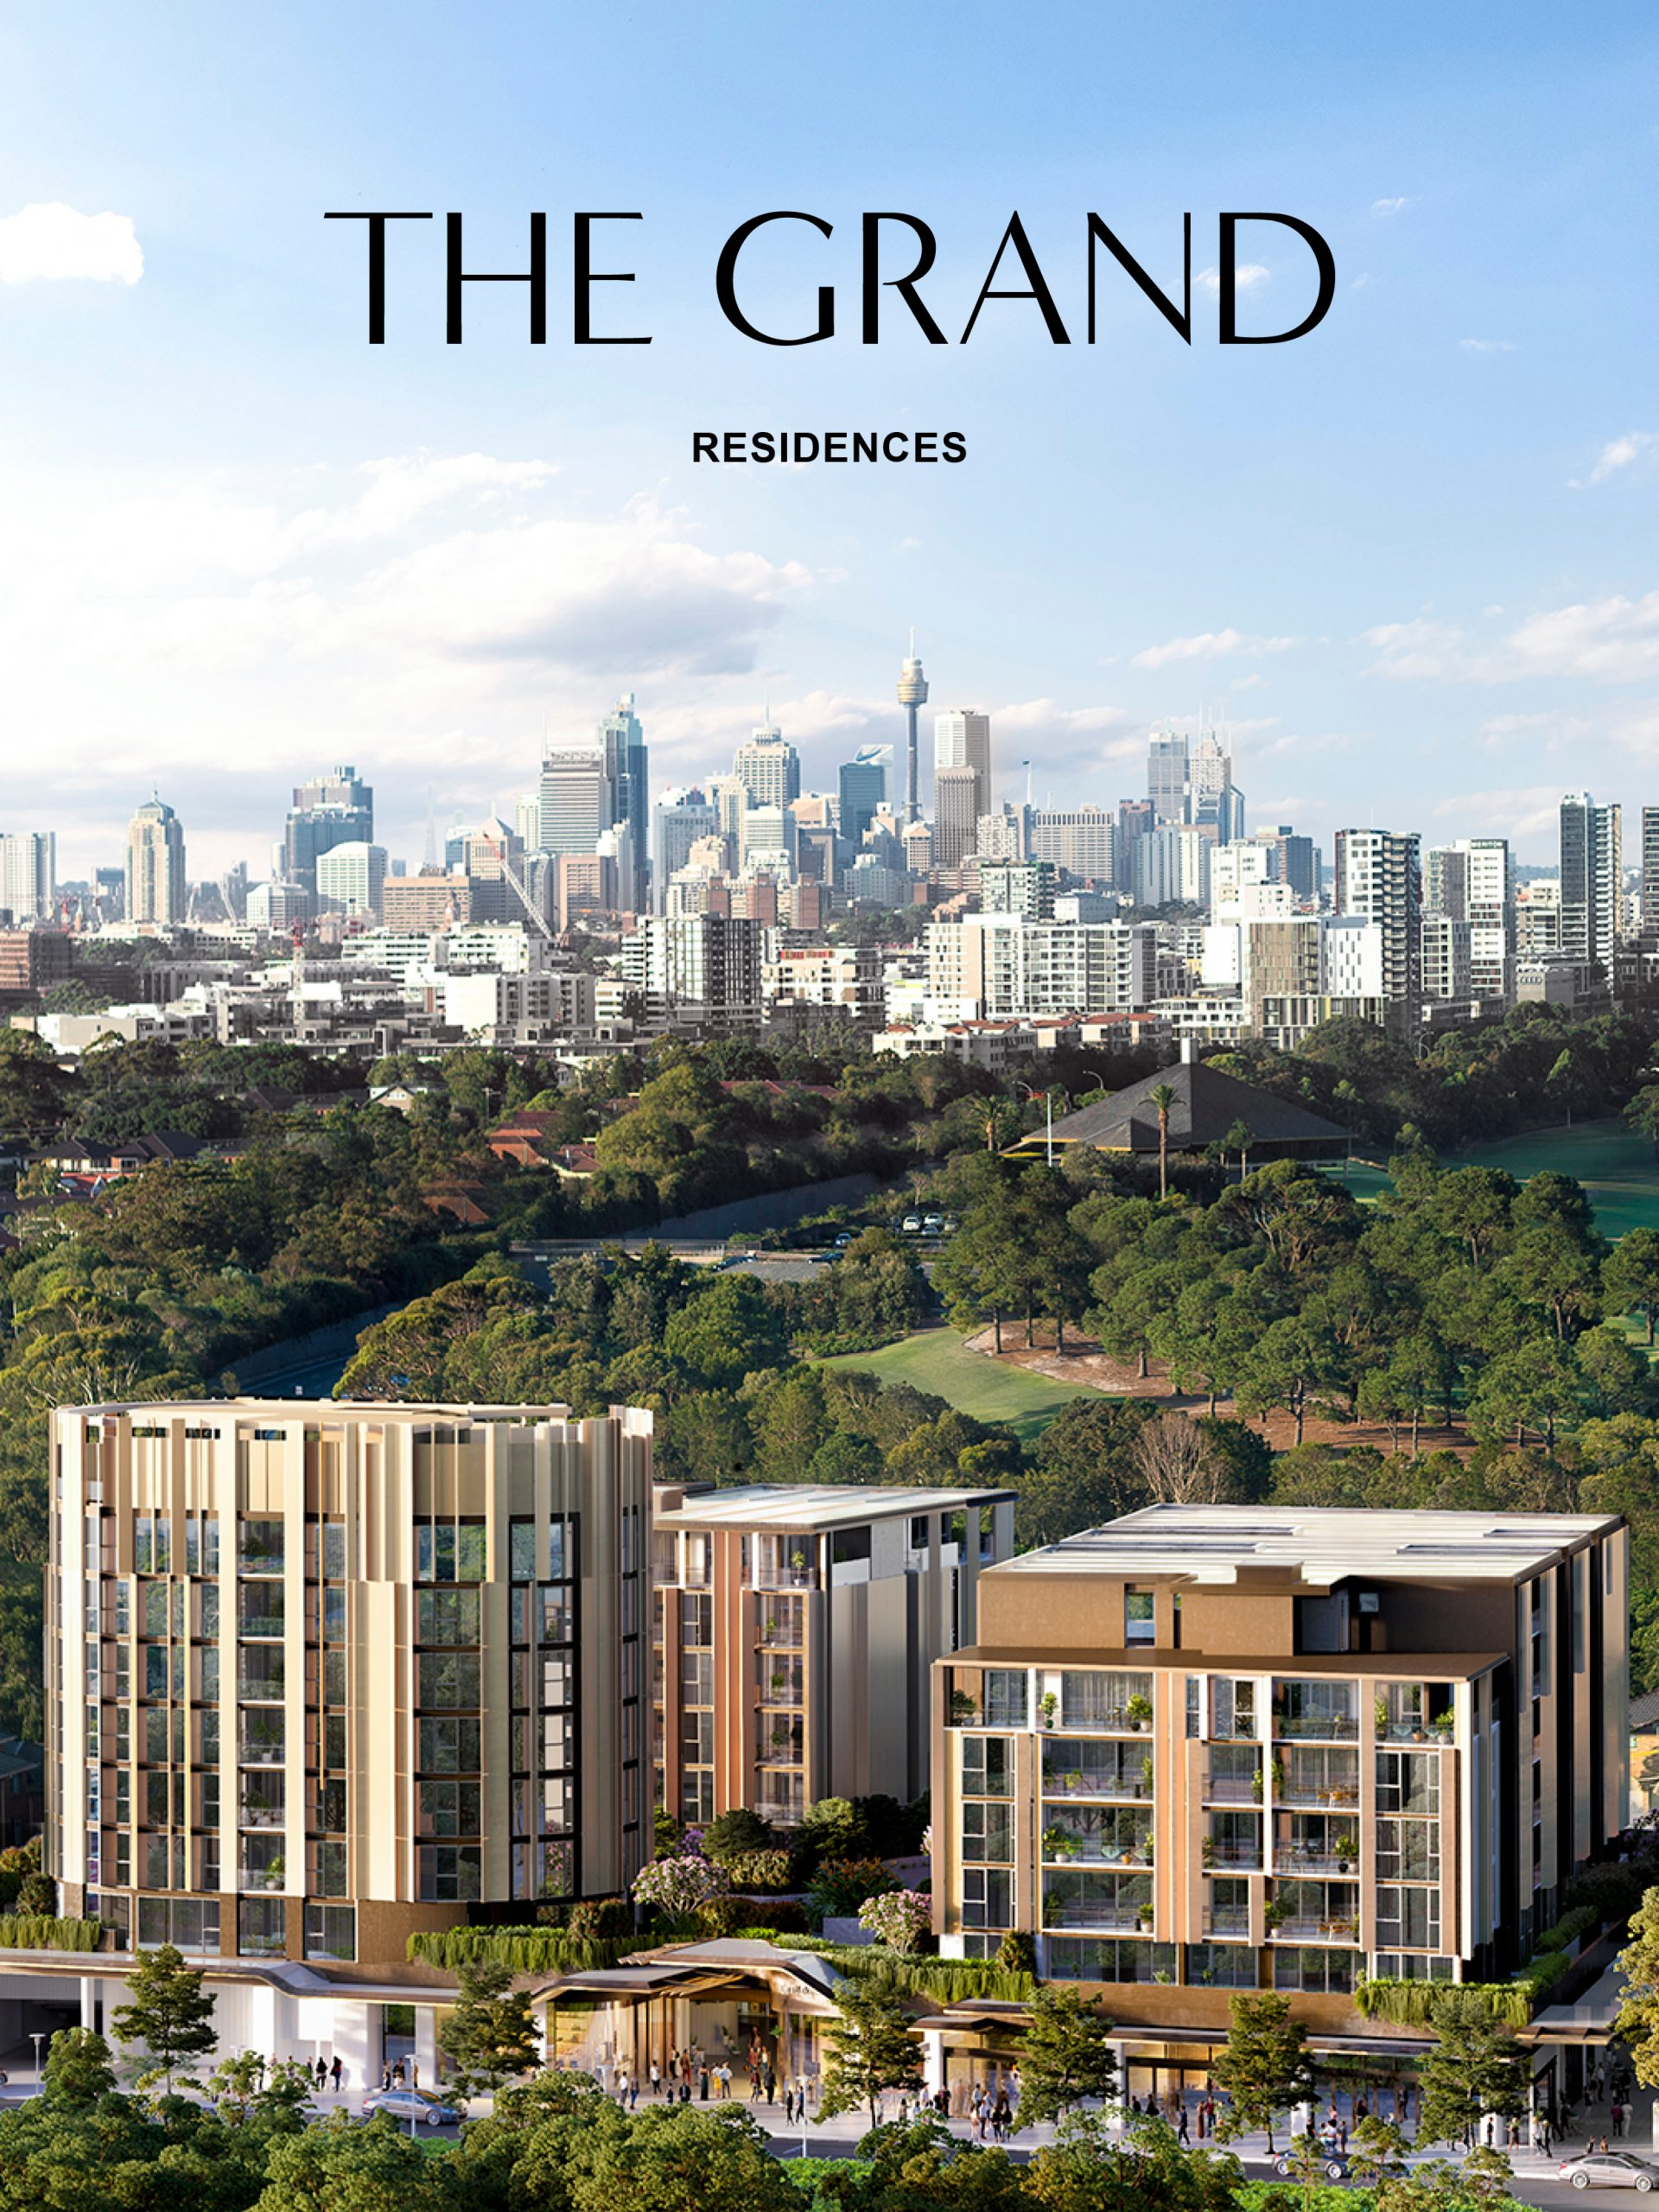 2021 TheGrand_BLOG Feature Image